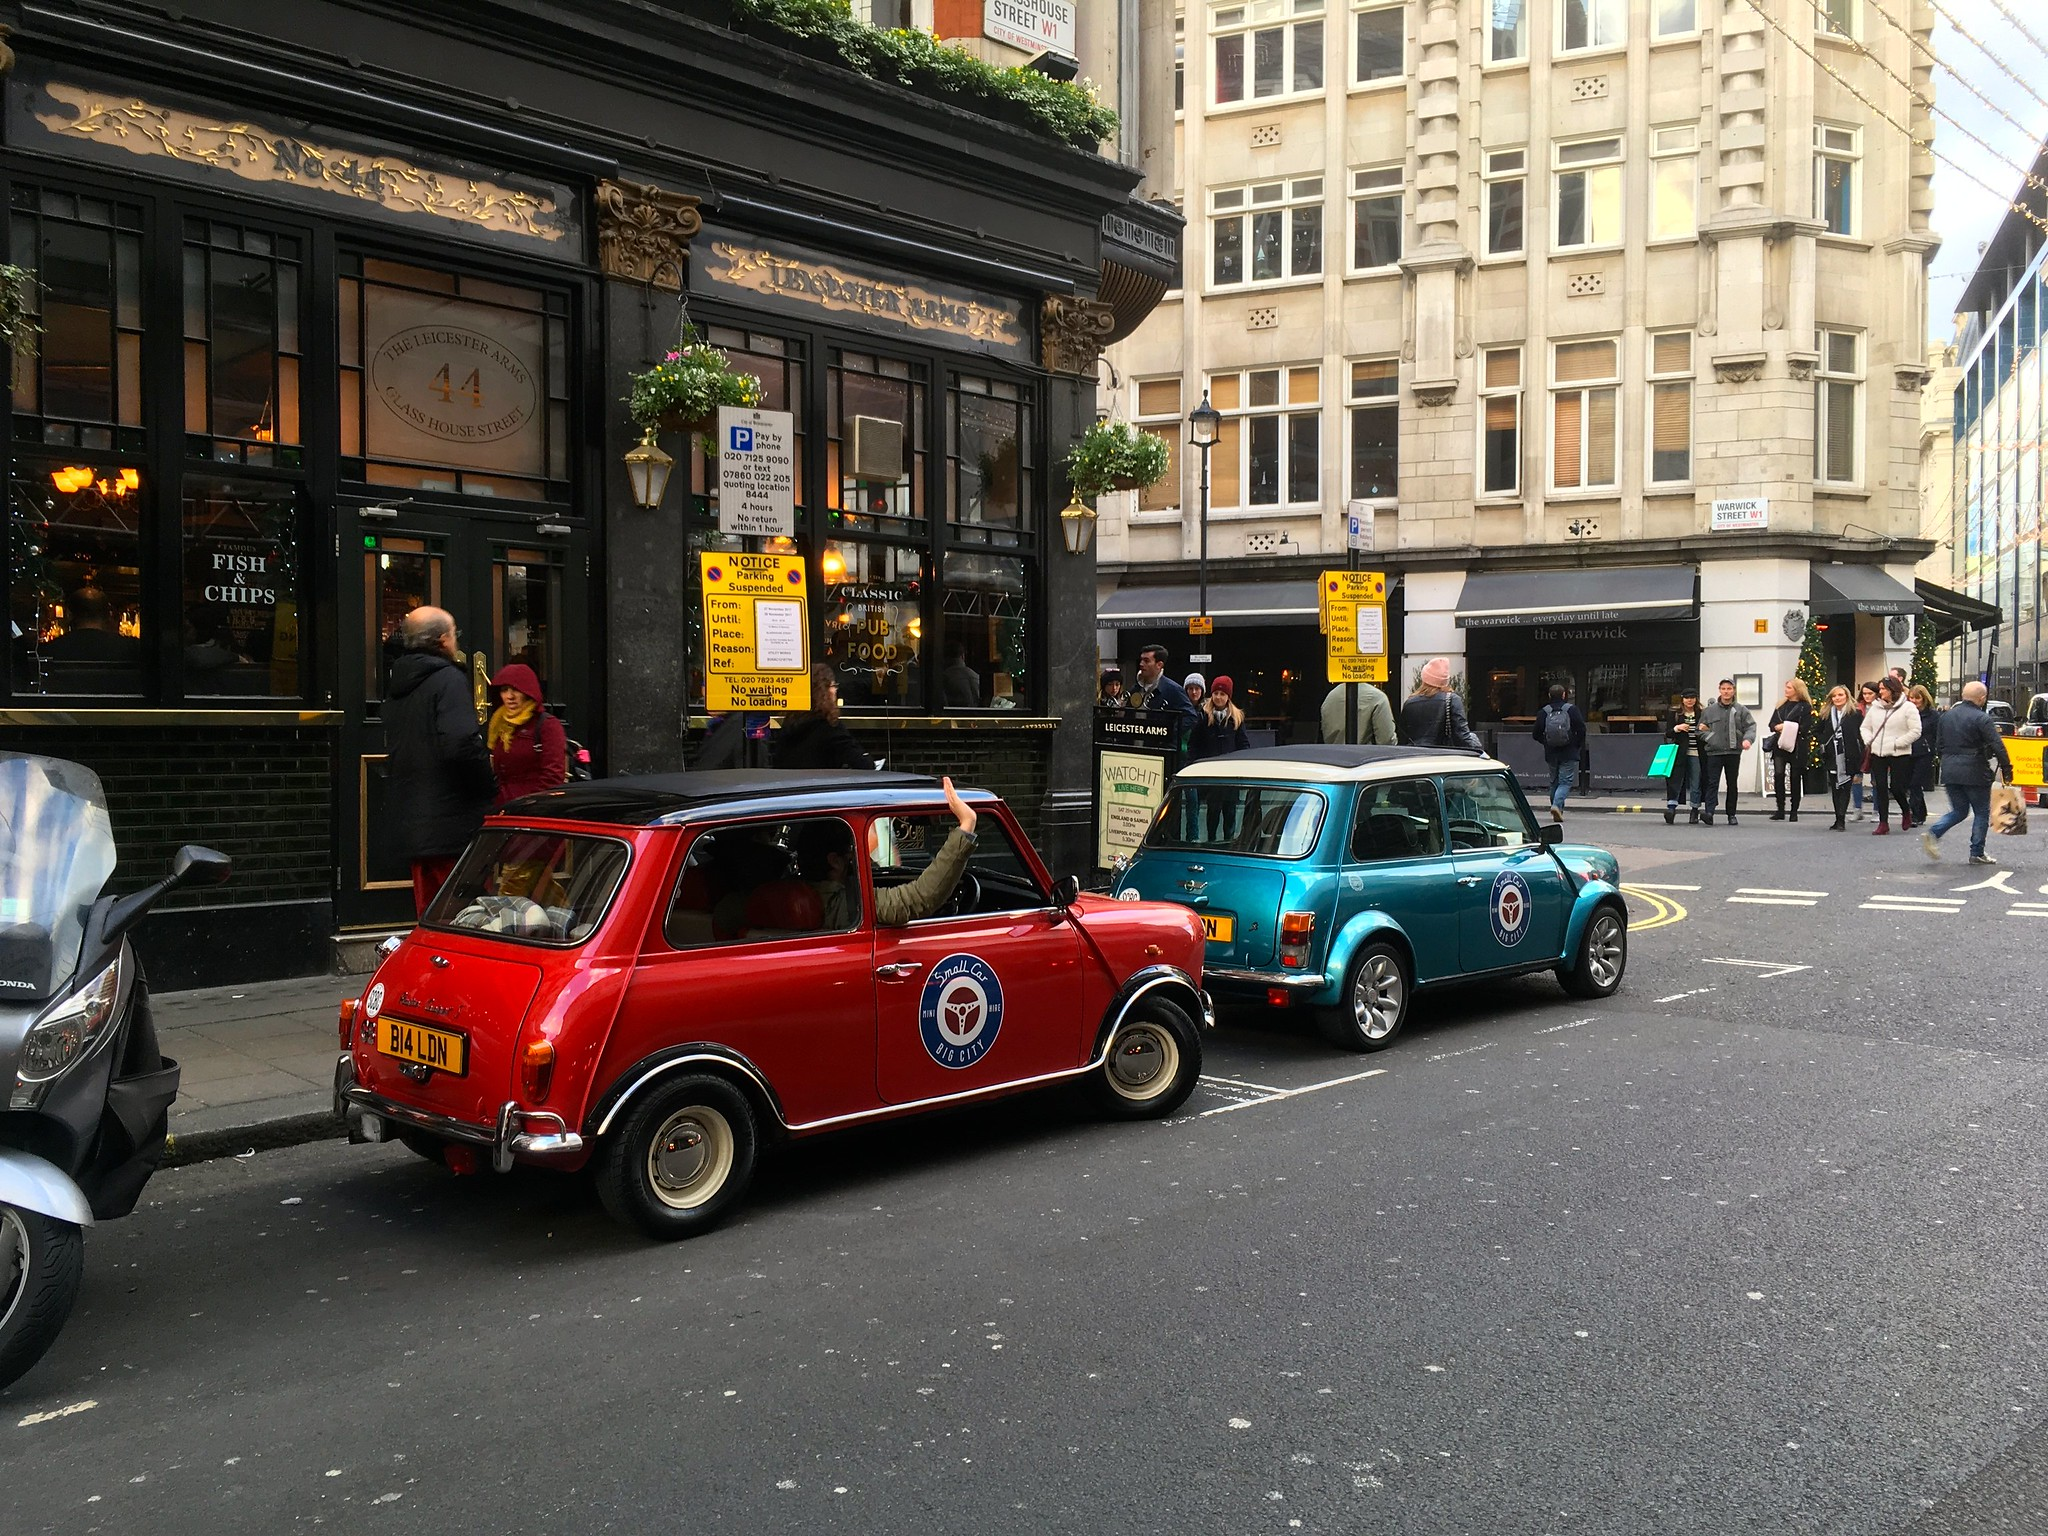 mini cooper fish and chips down town